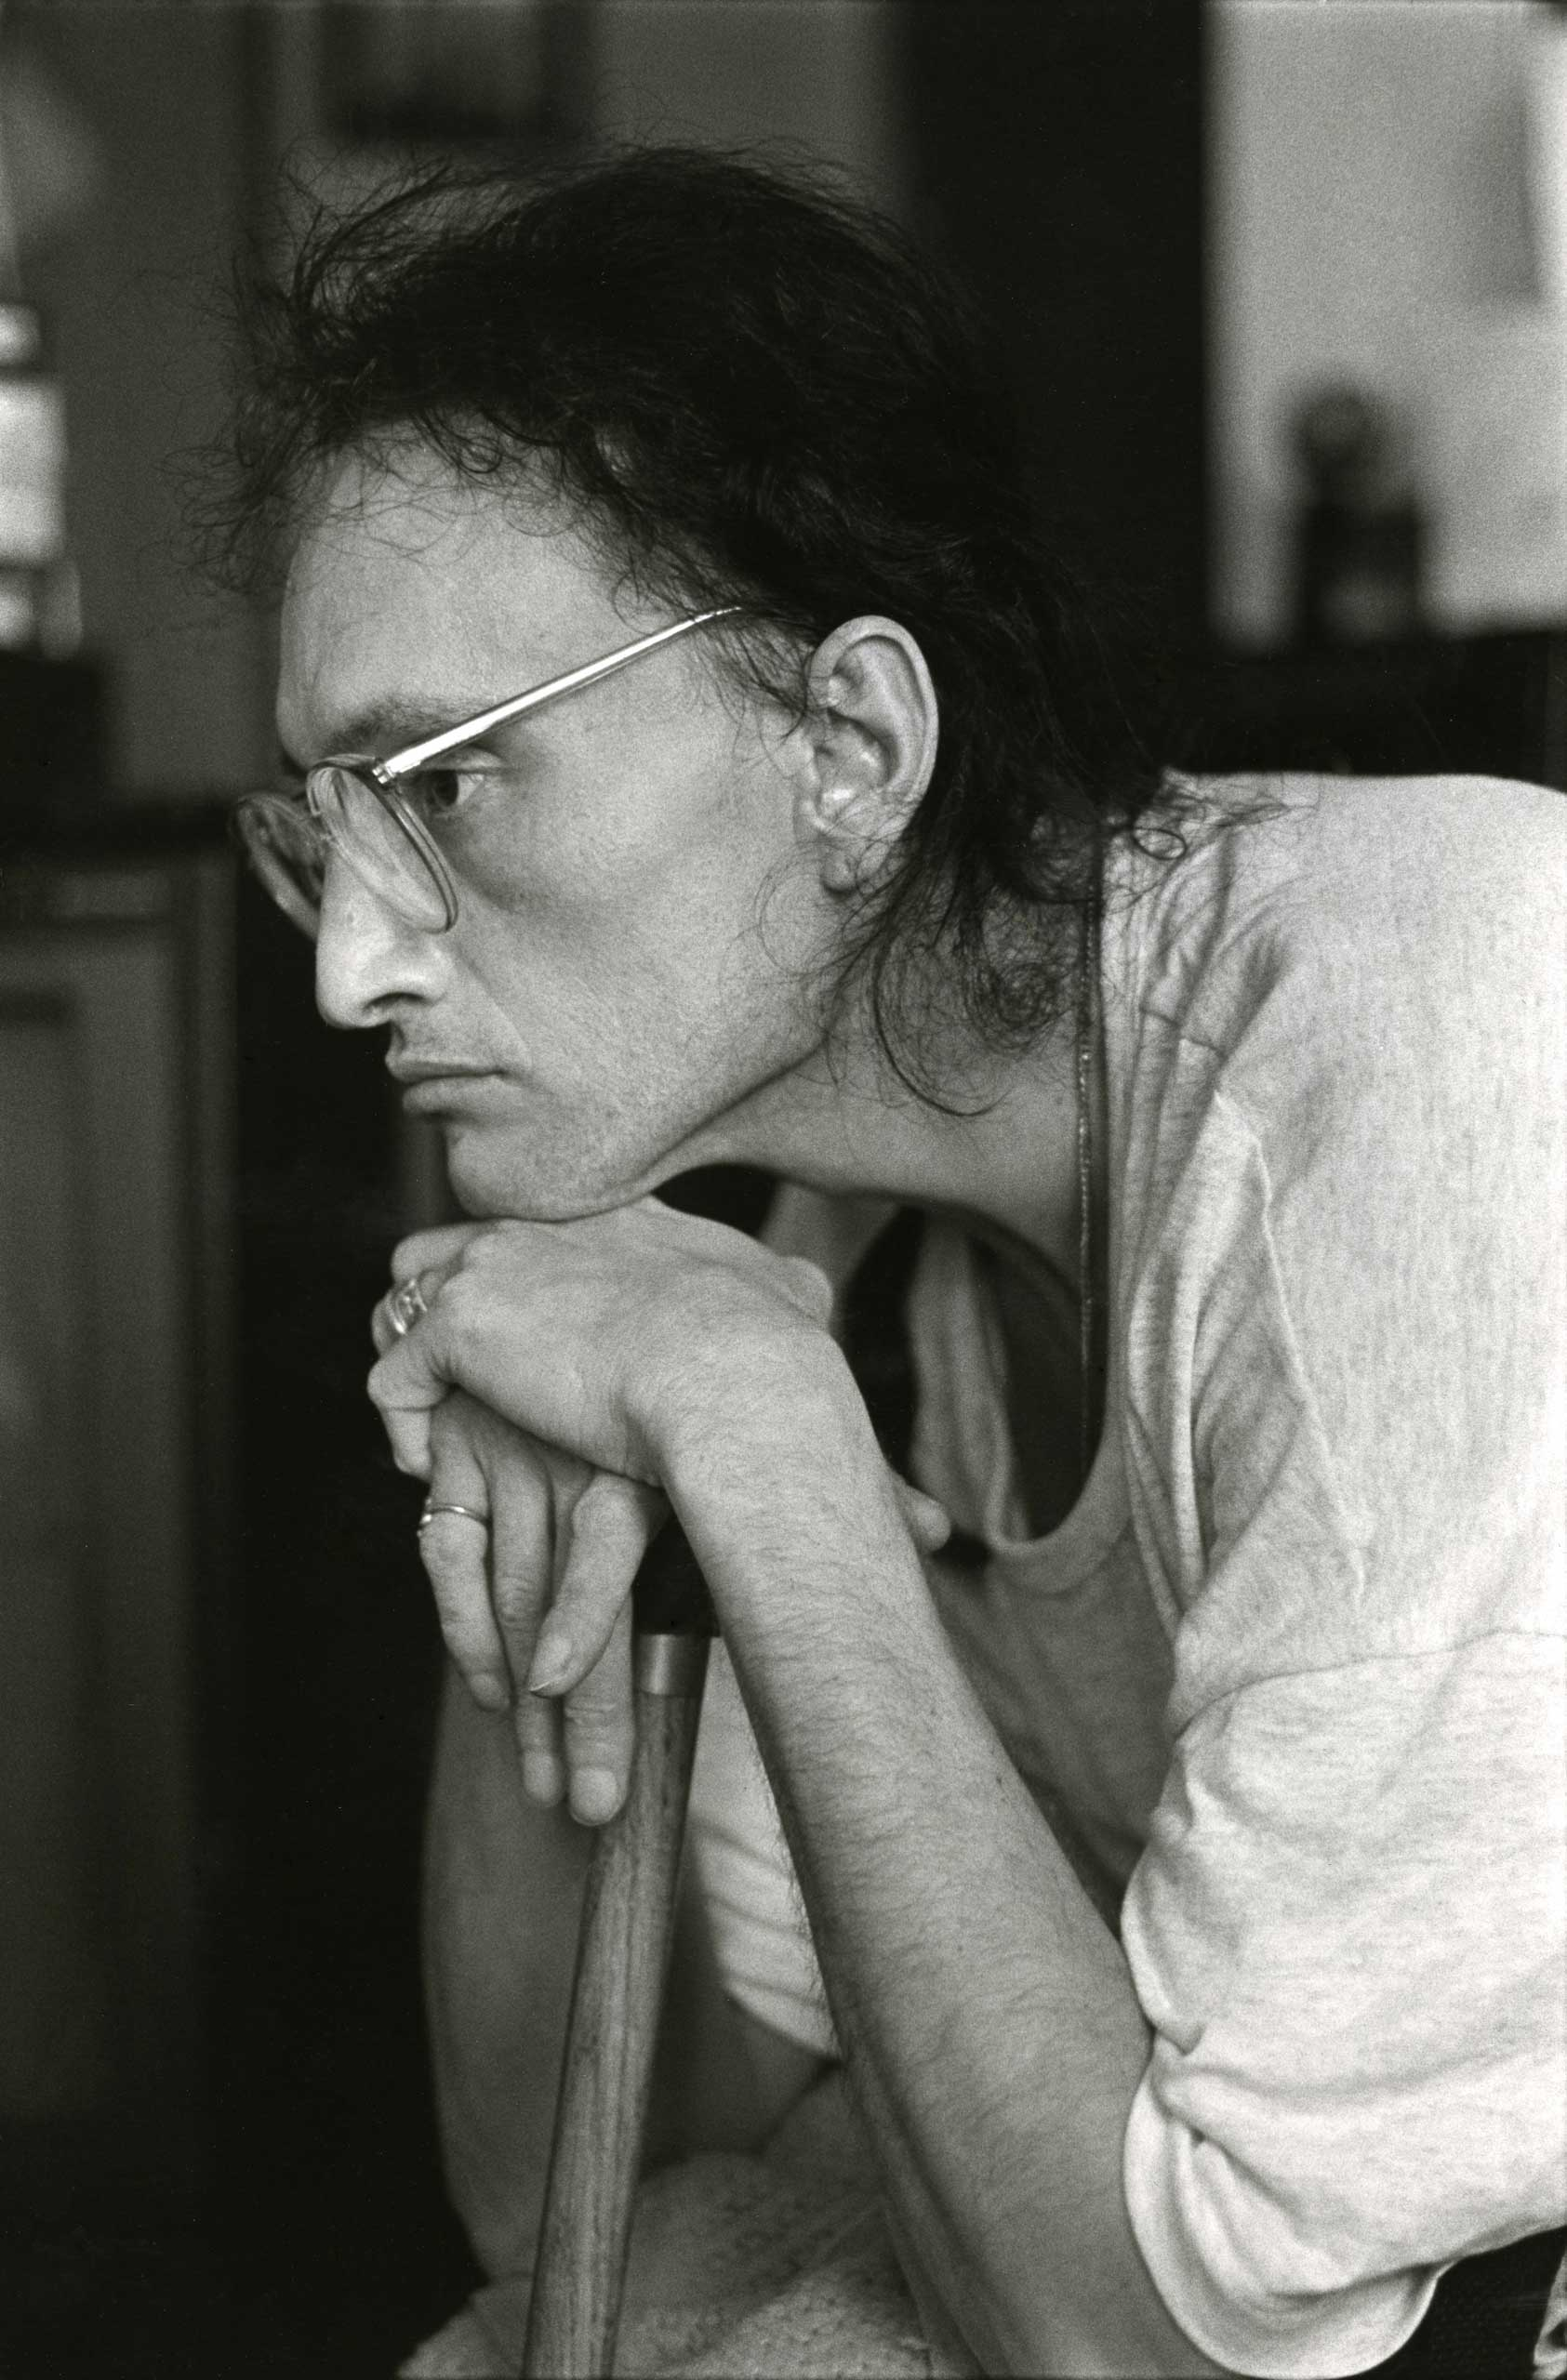 Peta at Pater Noster House, 1992.